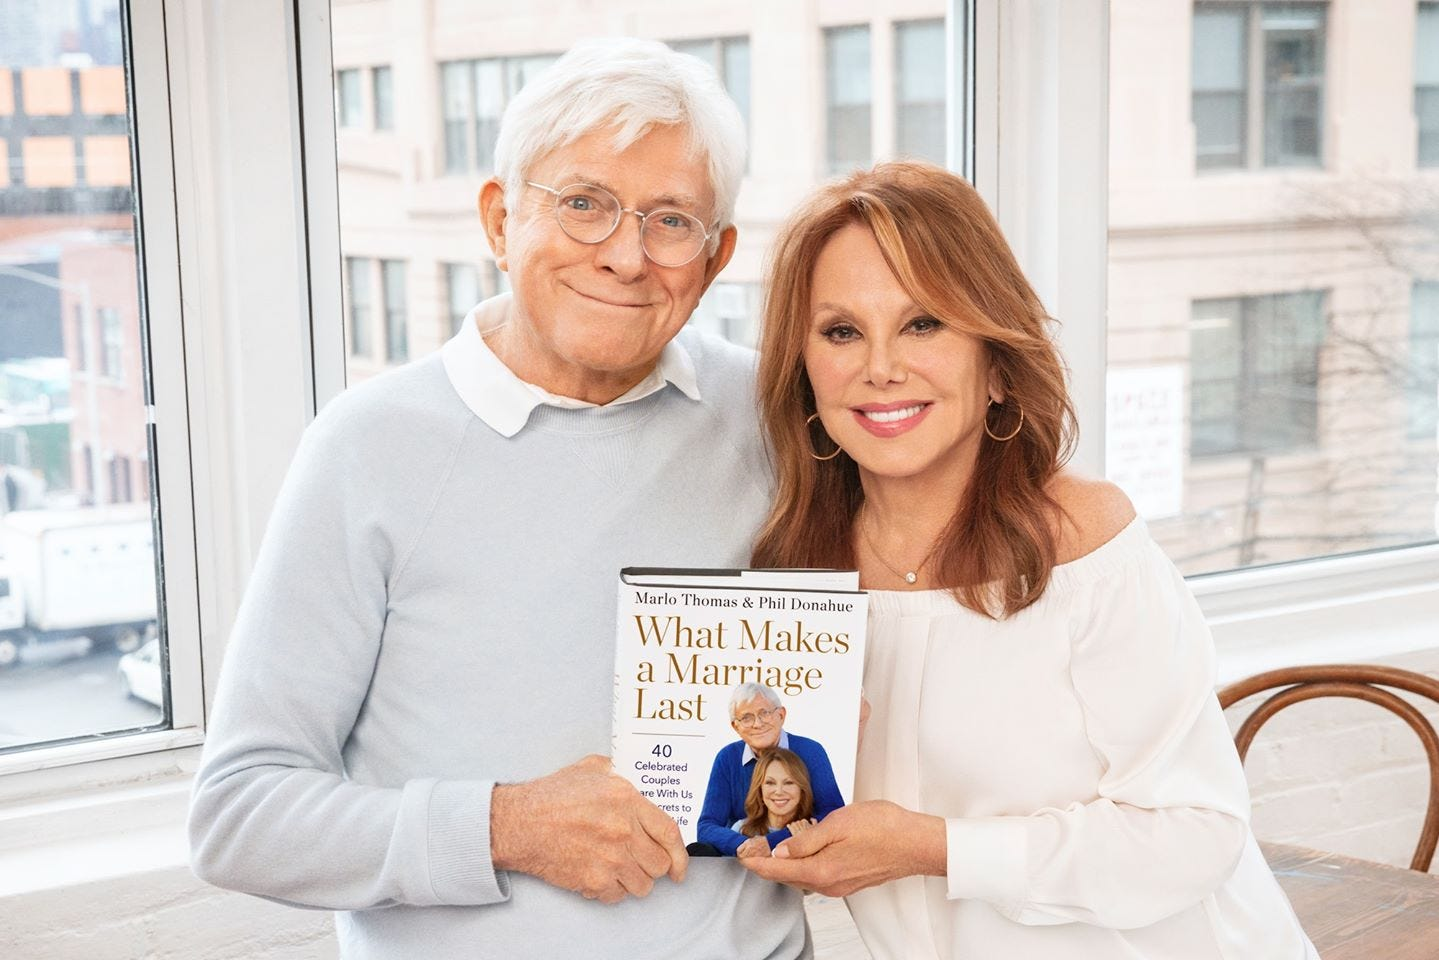 Marlo Thomas, Phil Donahue explore  secret sauce  of marriage with celeb couples in new book